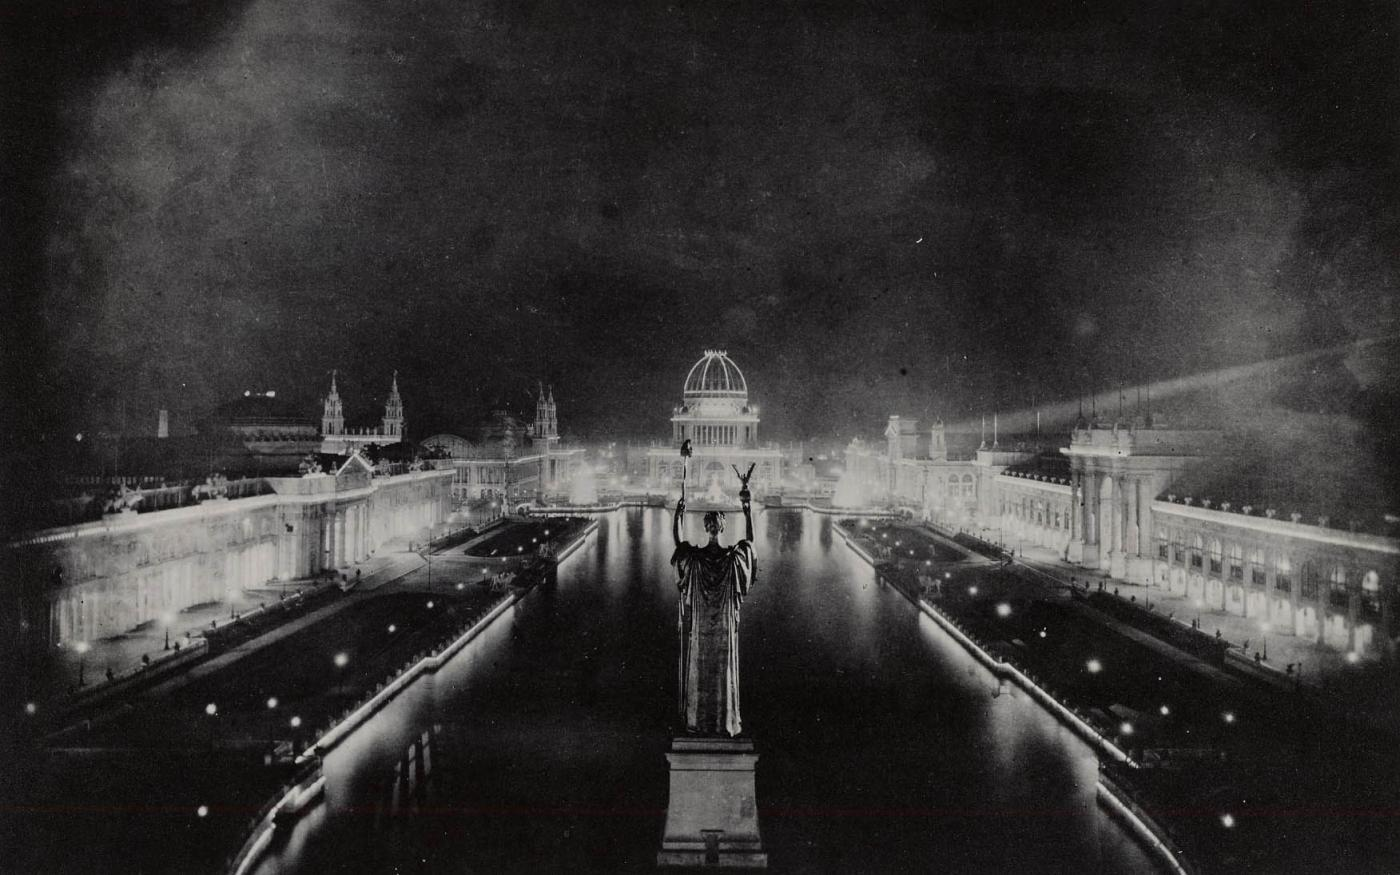 I Do Not Believe in the 1893 Chicago World's Fair